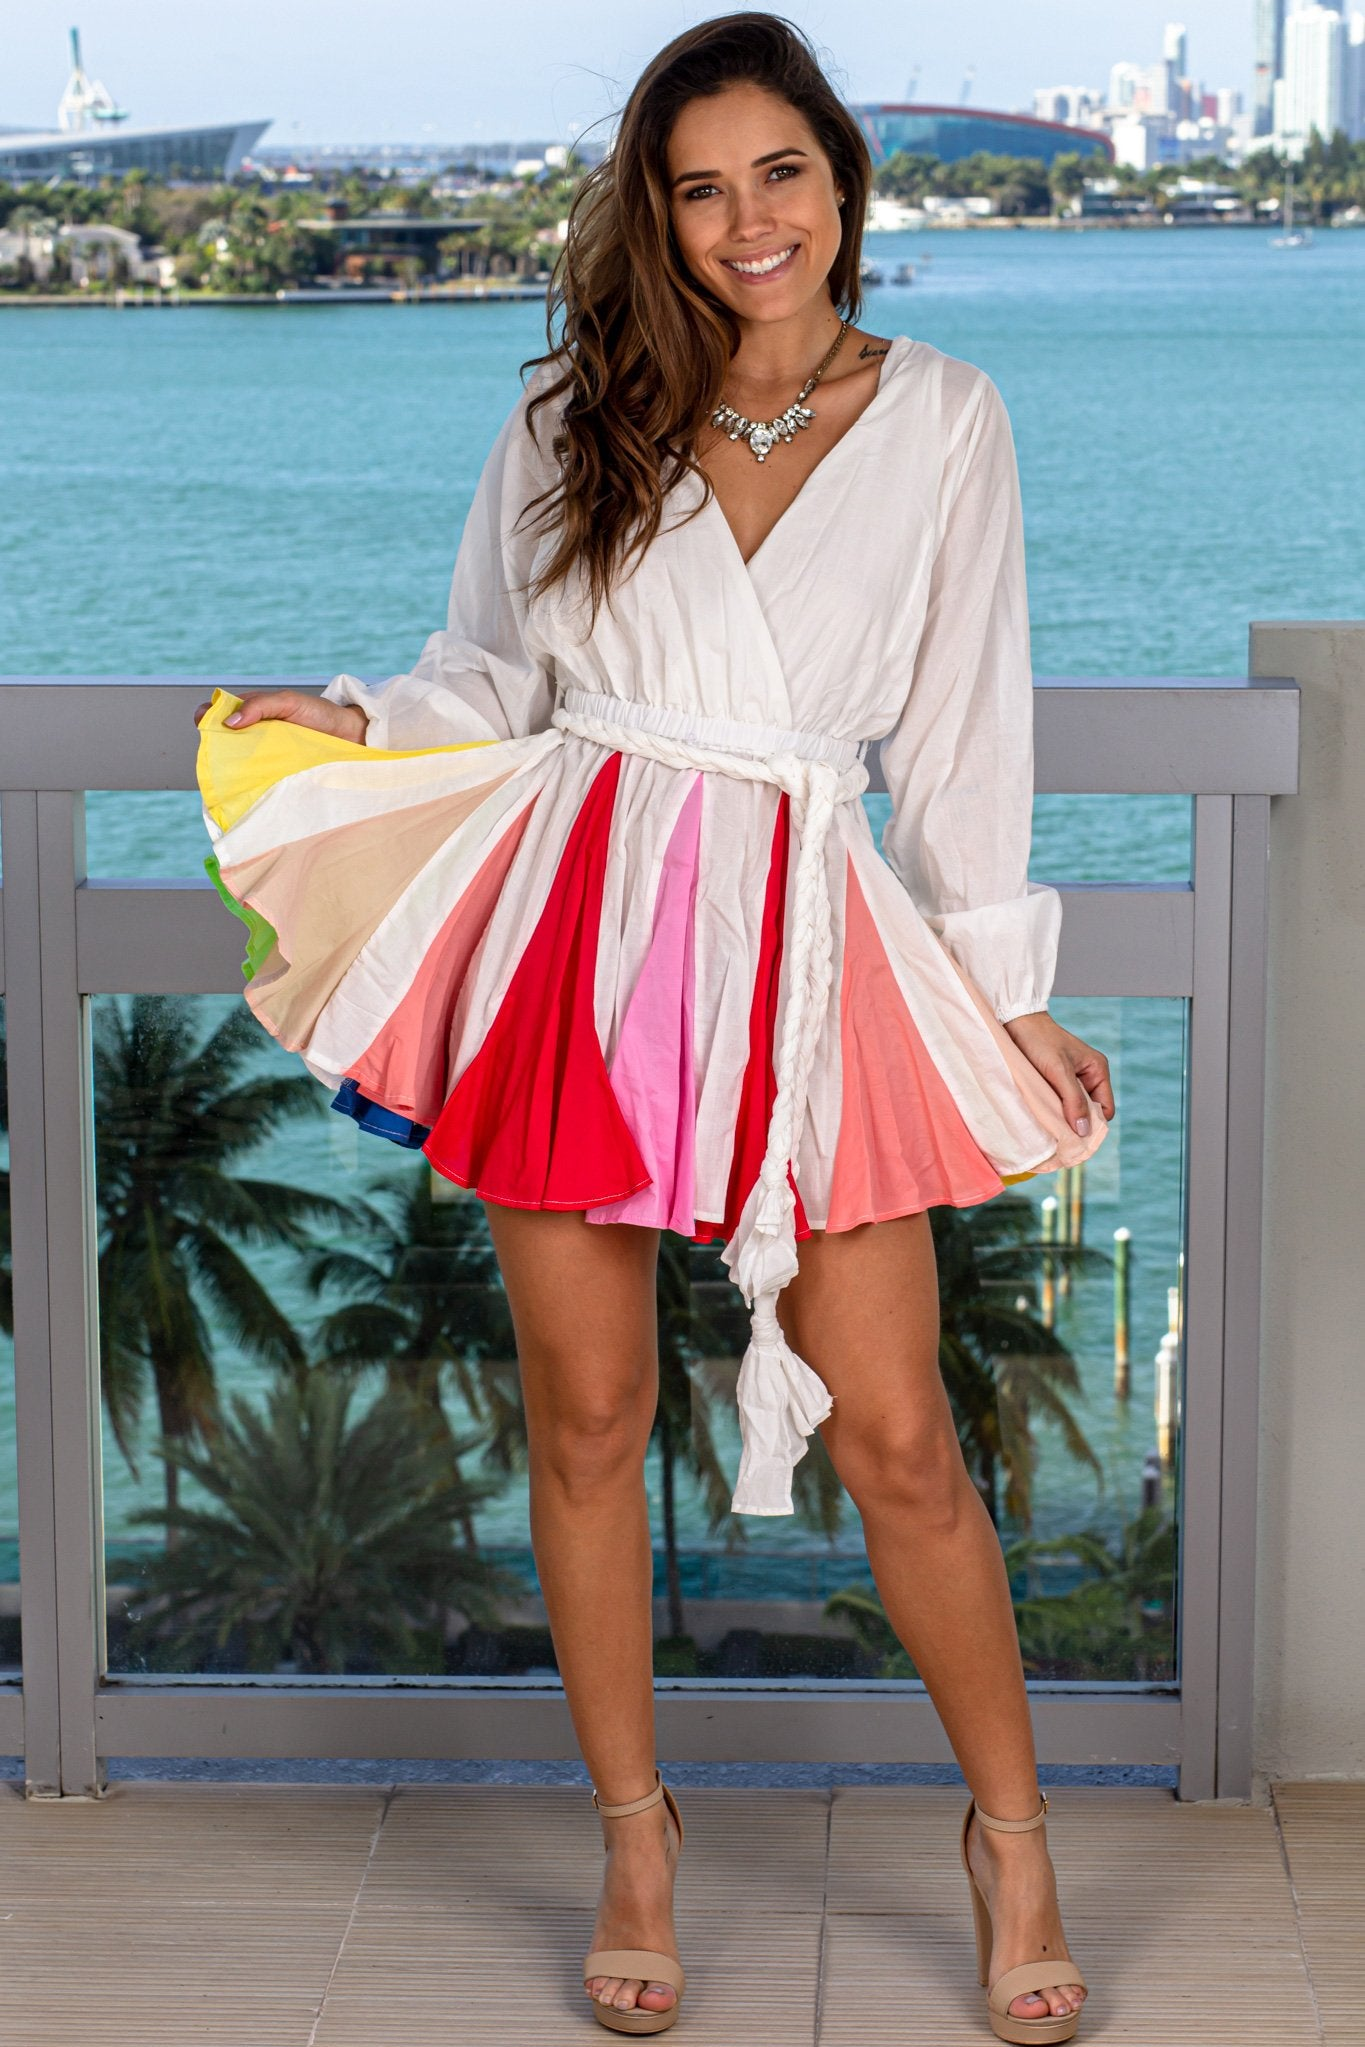 Ivory Short Dress with Rainbow Skirt